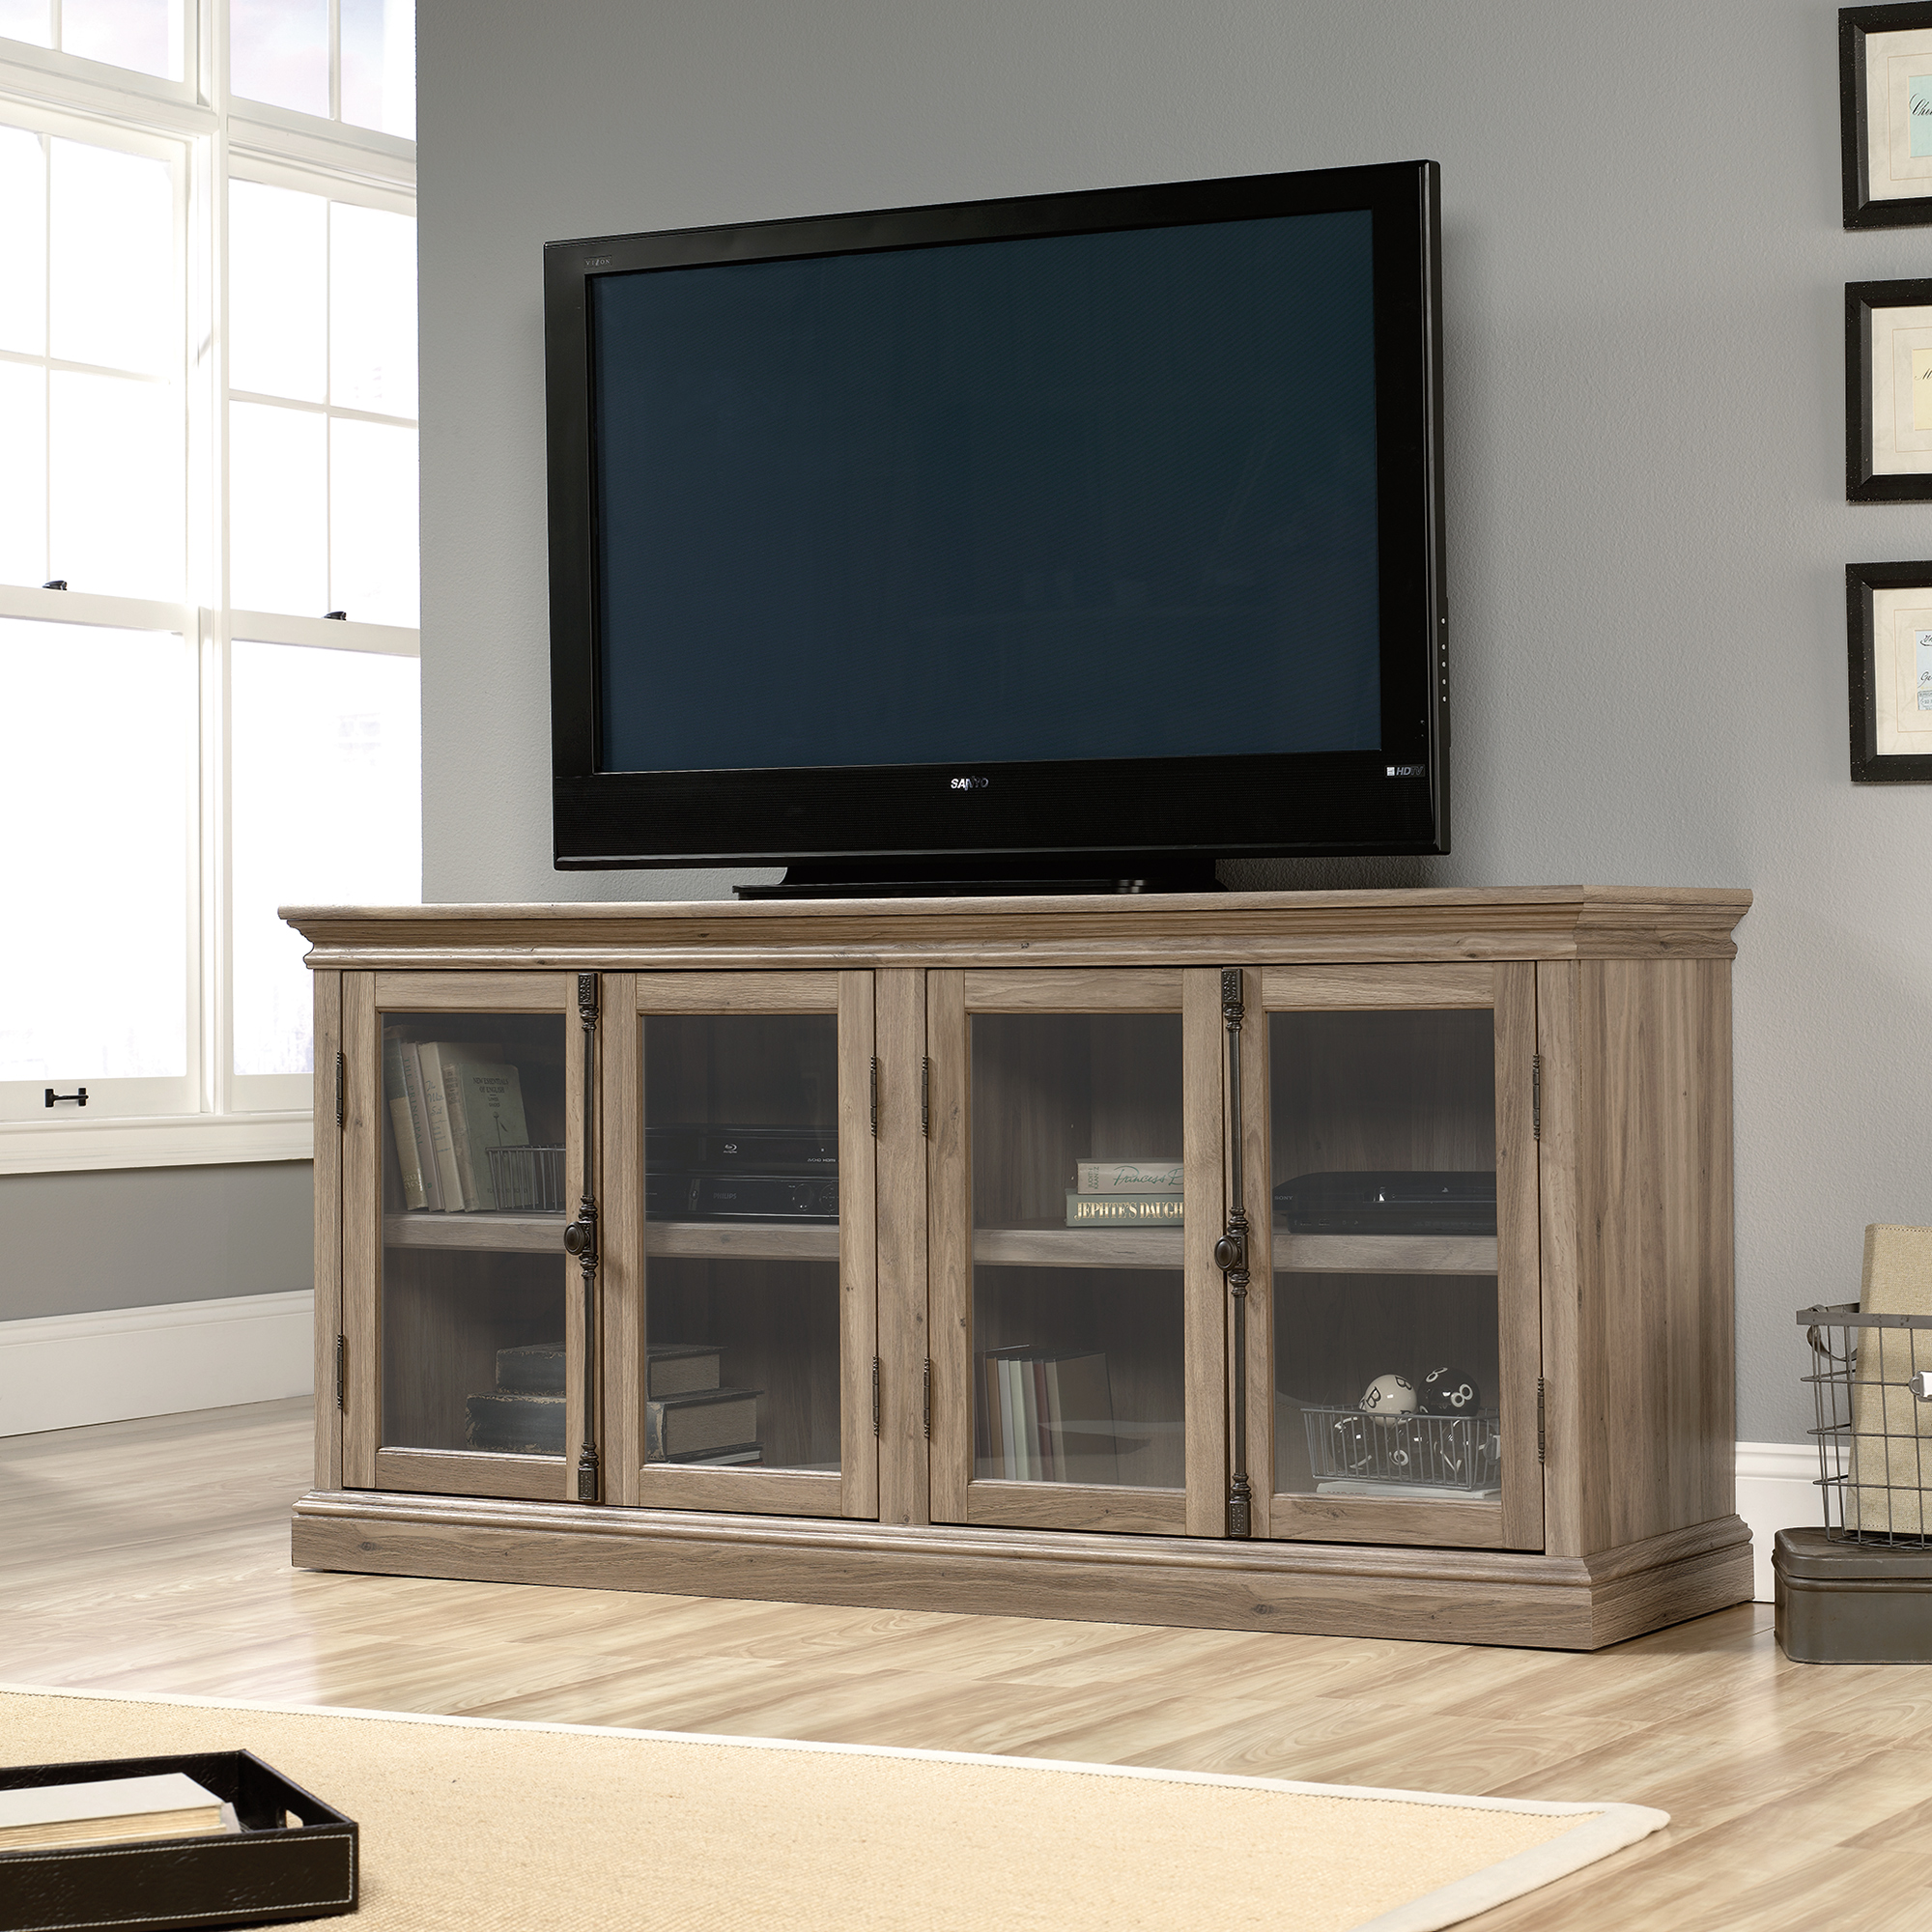 Sauder Barrister Lane TV Stand 414721 Sauder